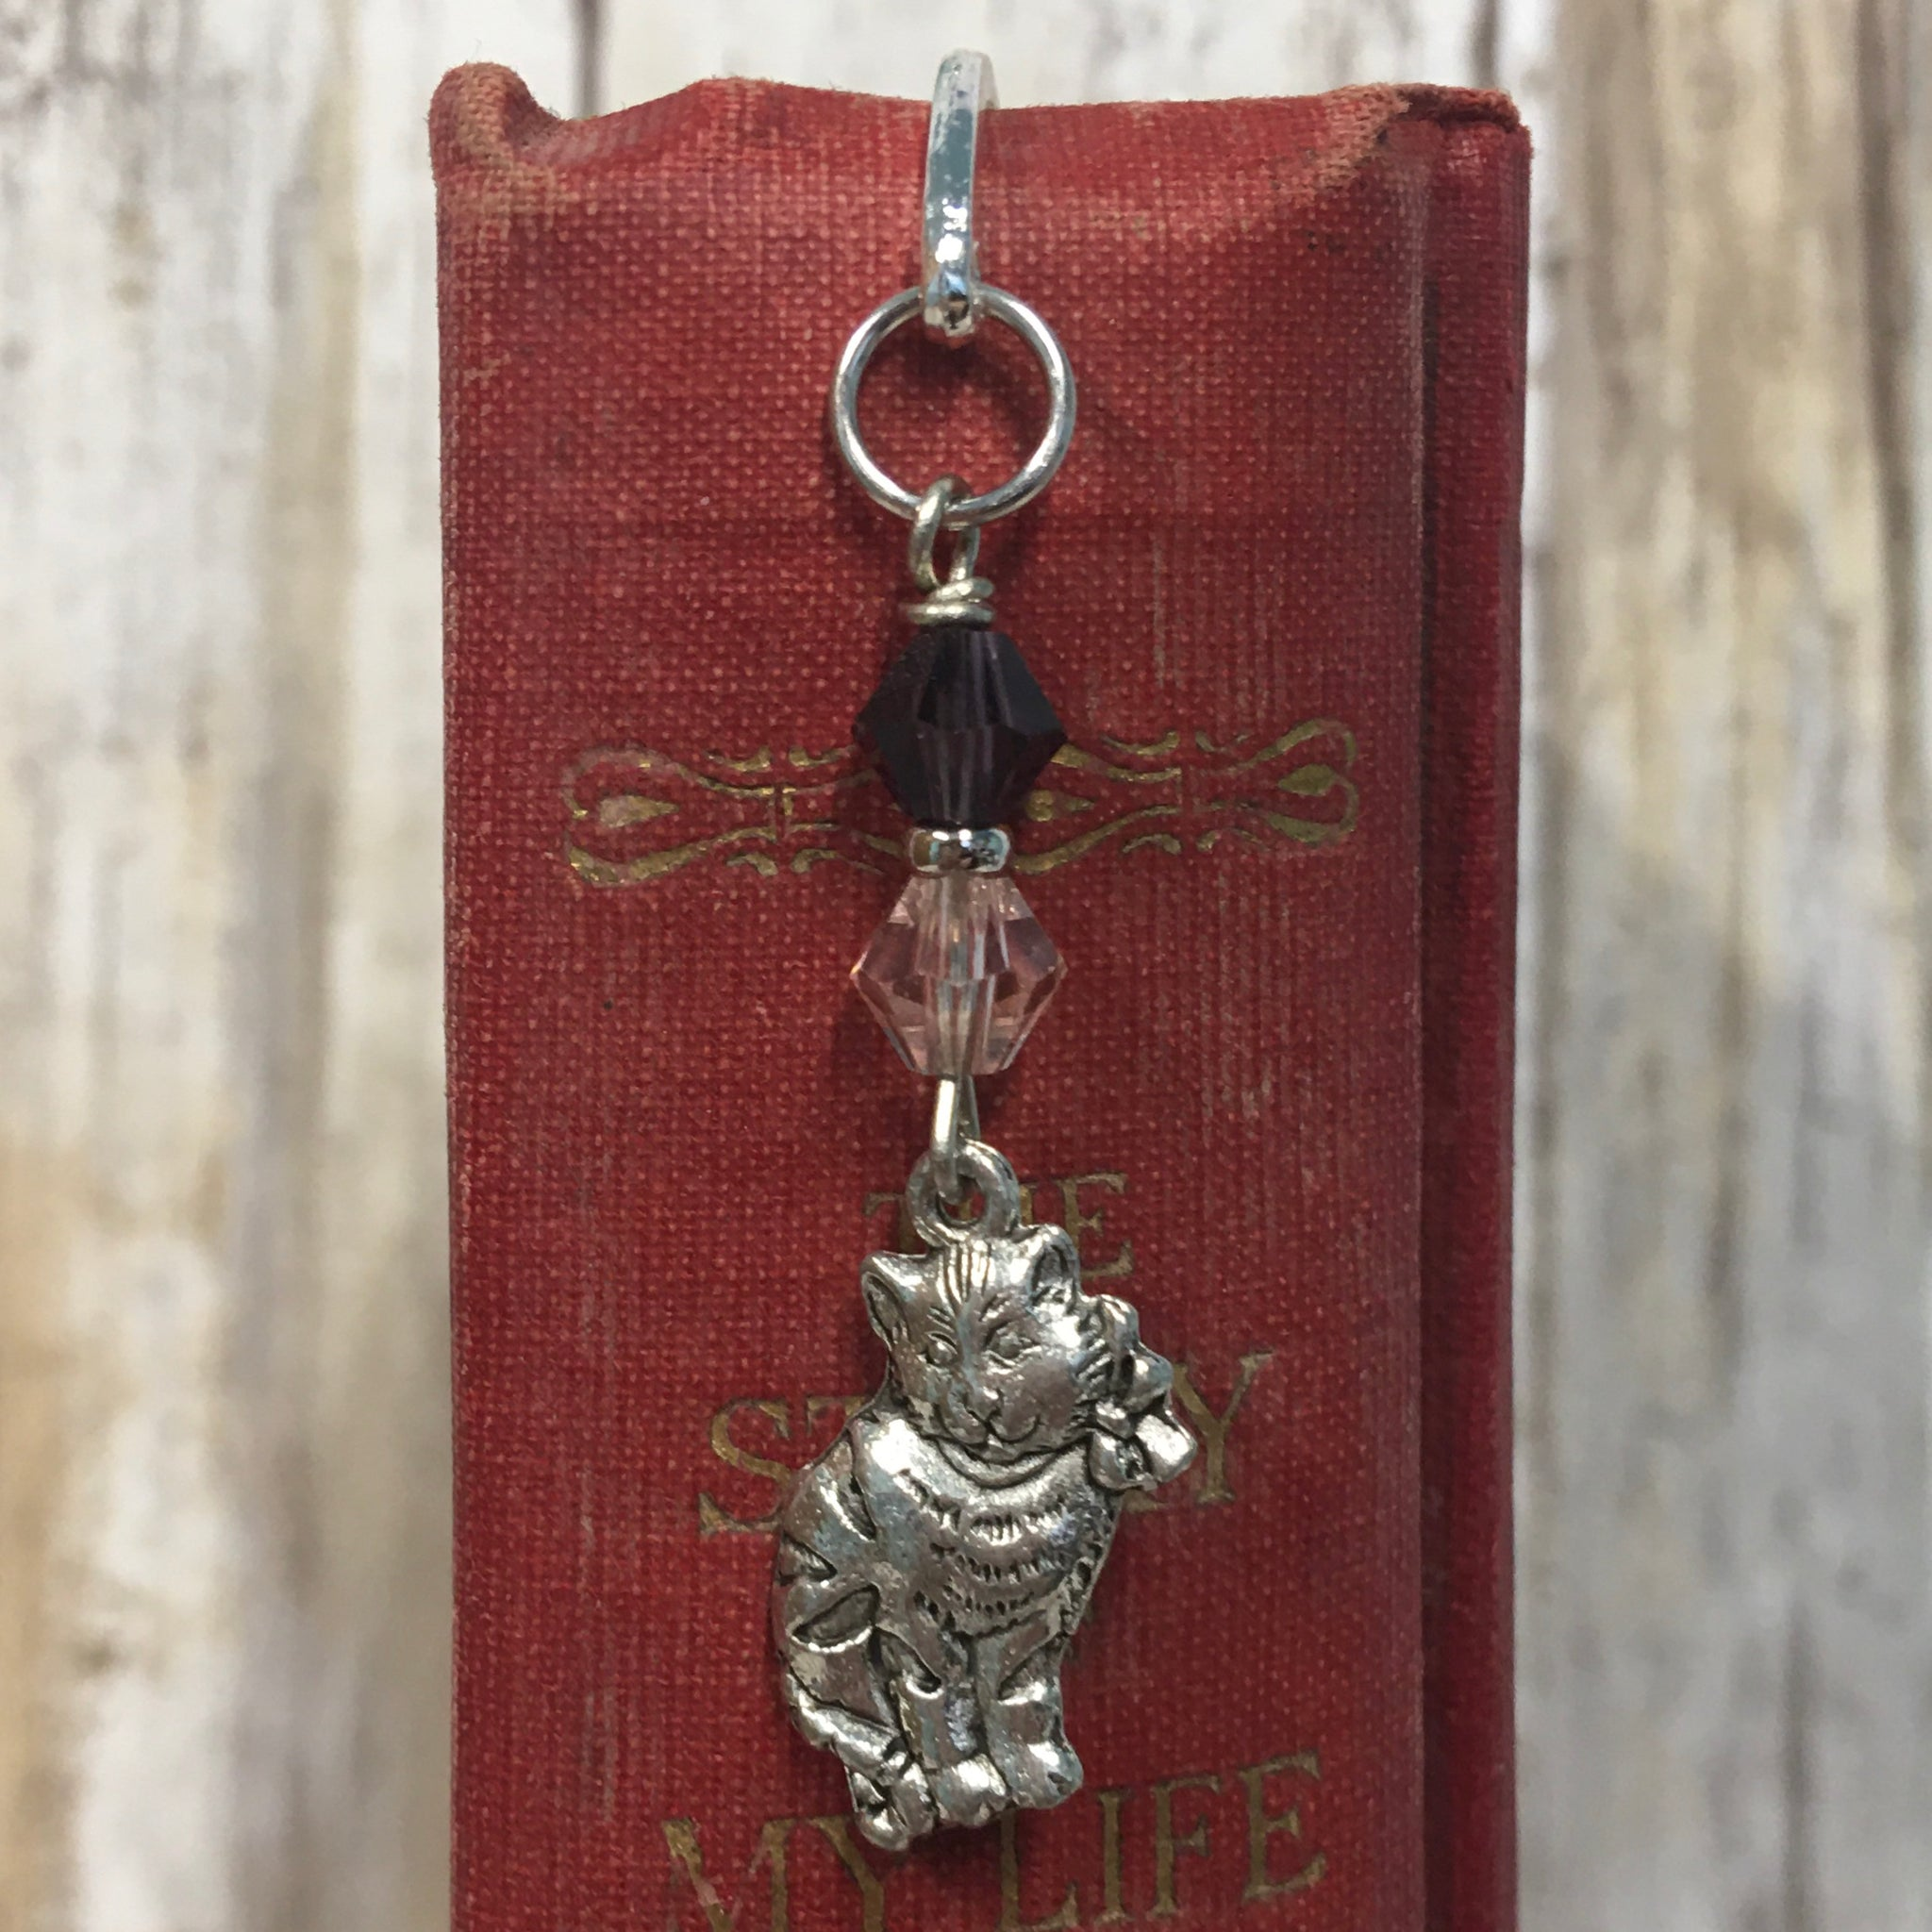 Alice in Wonderland Bookmarks - Hook Style with Swarovski Crystals & Charm